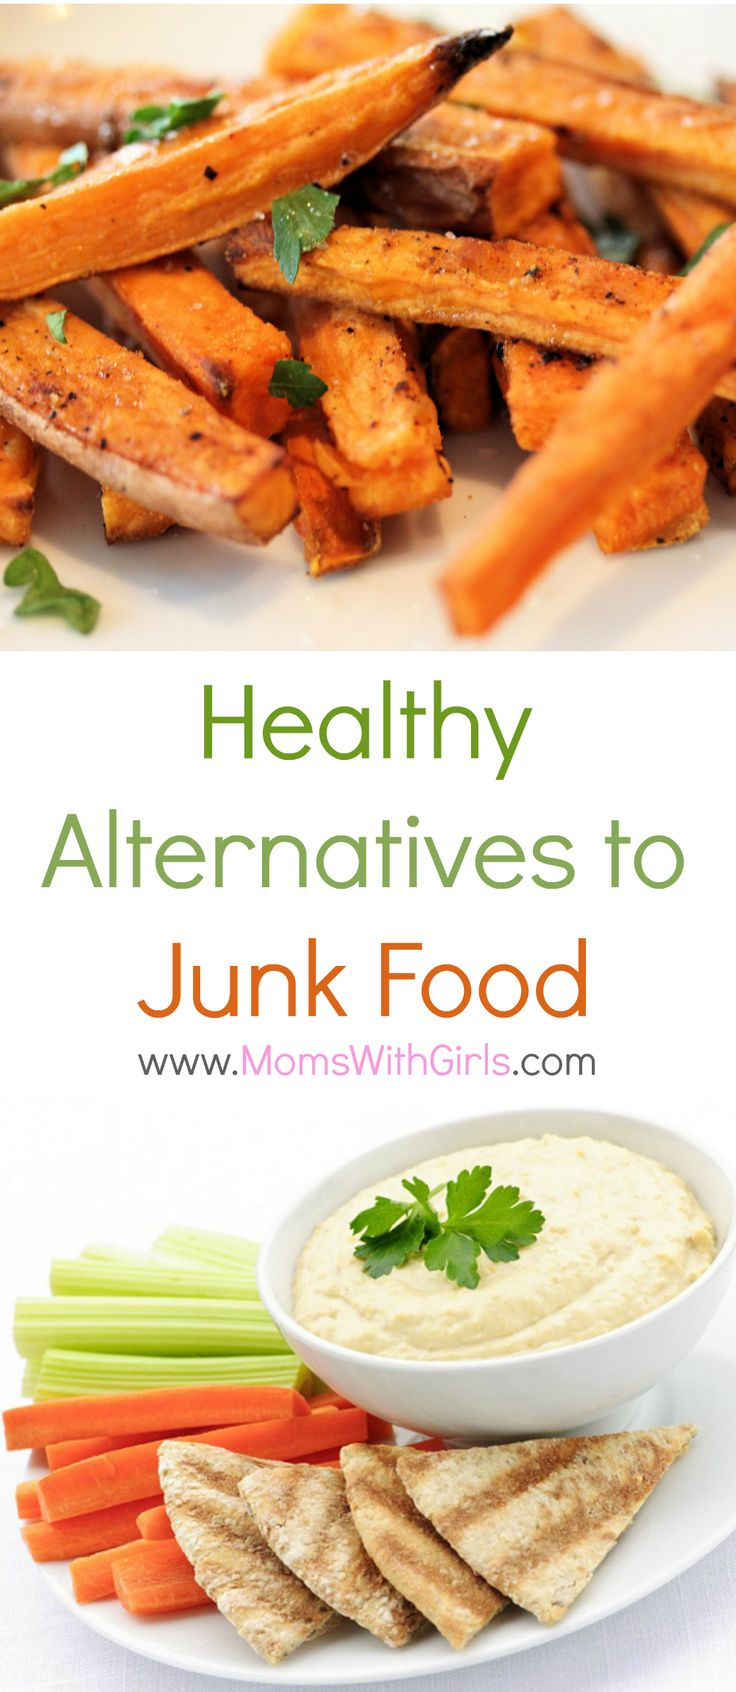 essay on healthy substitutes of junk food Junk food is bad for people of all ages, but mostly for teenagers and young children because it ends up effectively ruining their health for good parents and other responsible adults should be extra aware to ensure that they set a good example and feed their children balanced and healthy diets.